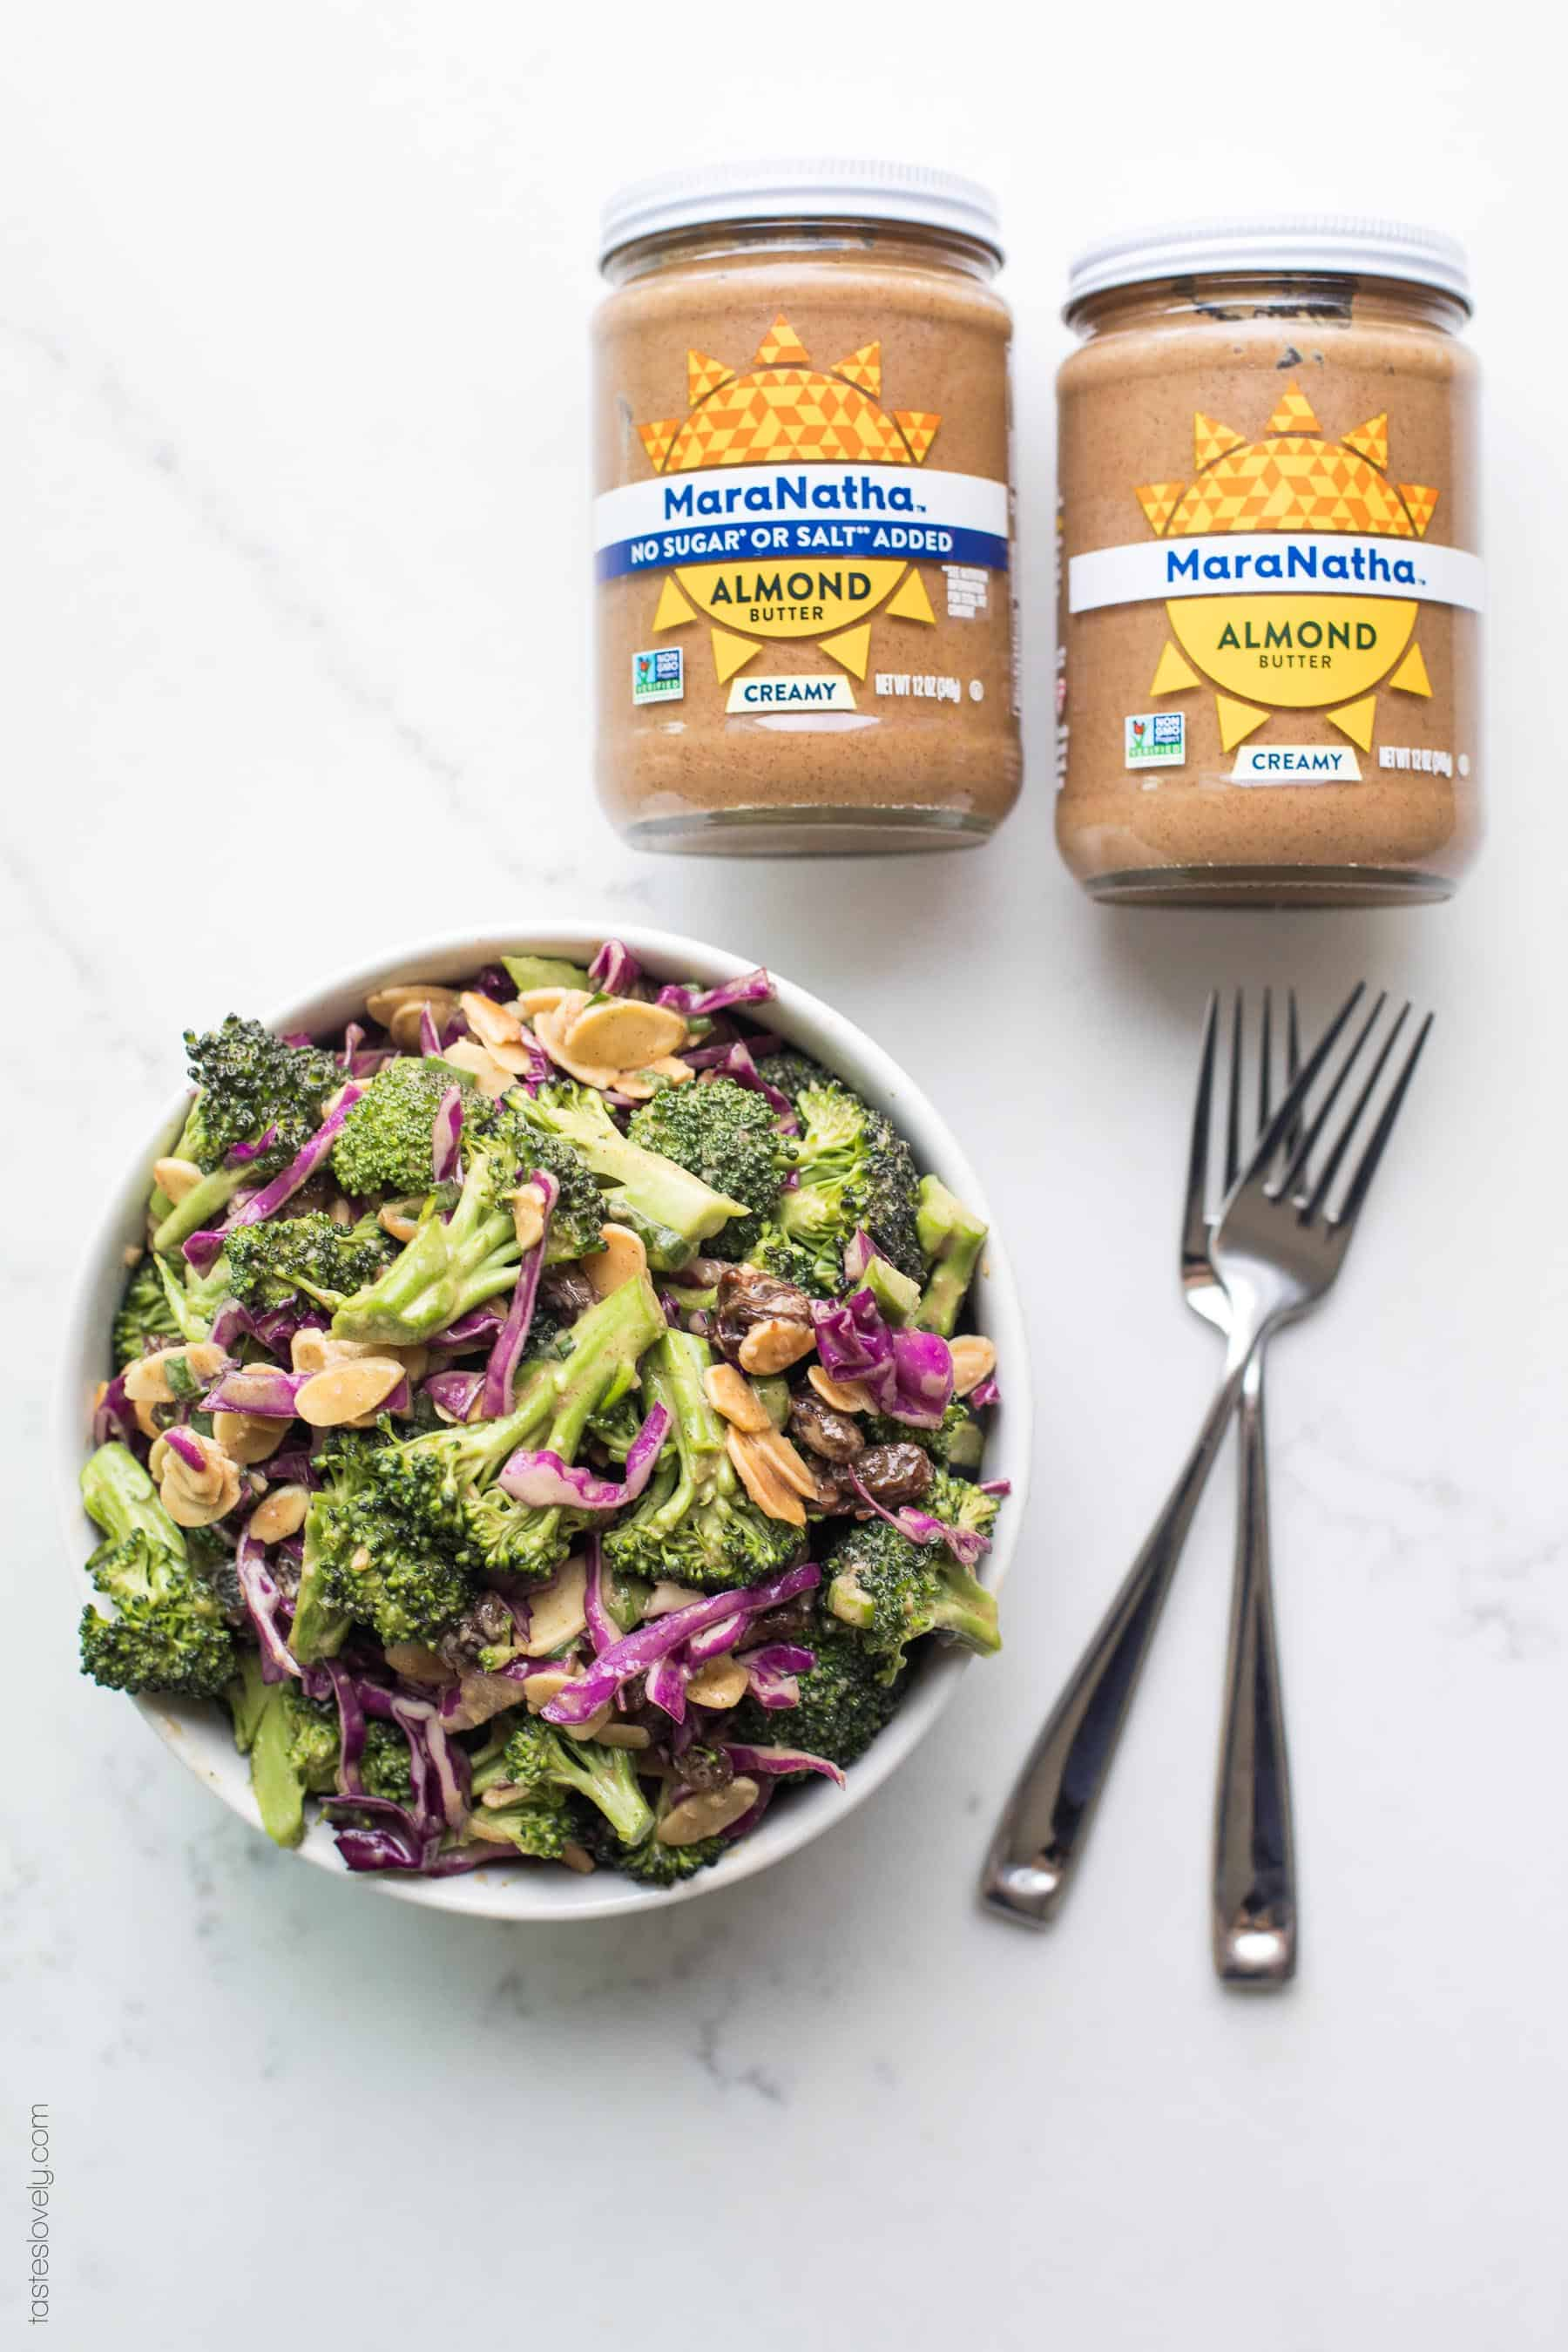 Paleo + Whole30 Broccoli Salad with Orange Almond Dressing #paleo #whole30 #glutenfree #grainfree #dairyfree #sugarfree #keto #cleaneating #realfood